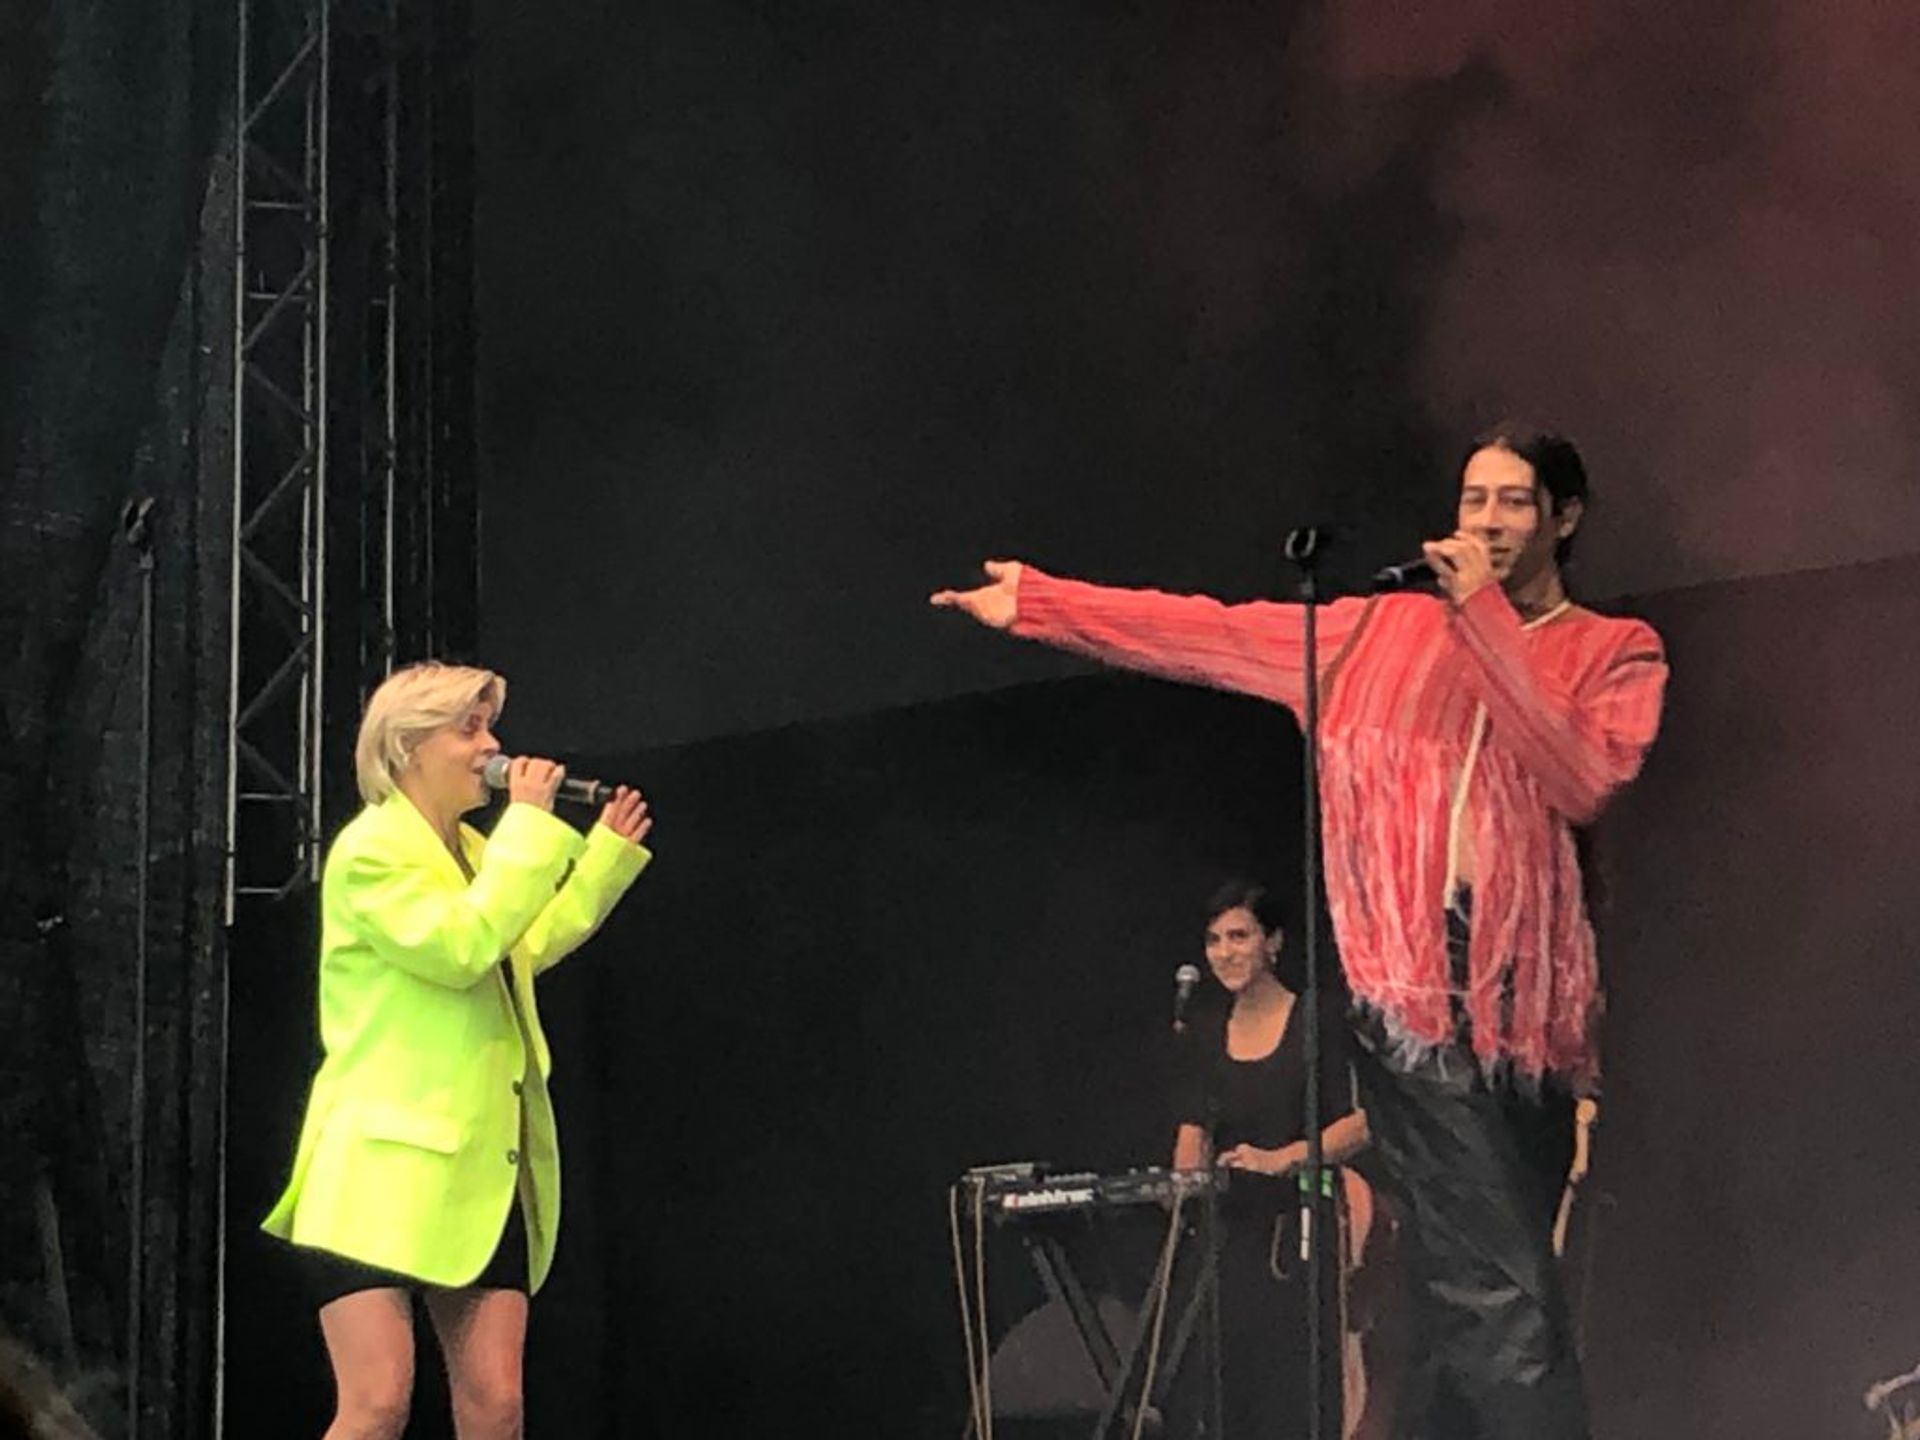 Kindness and Robyn singing together on stage.